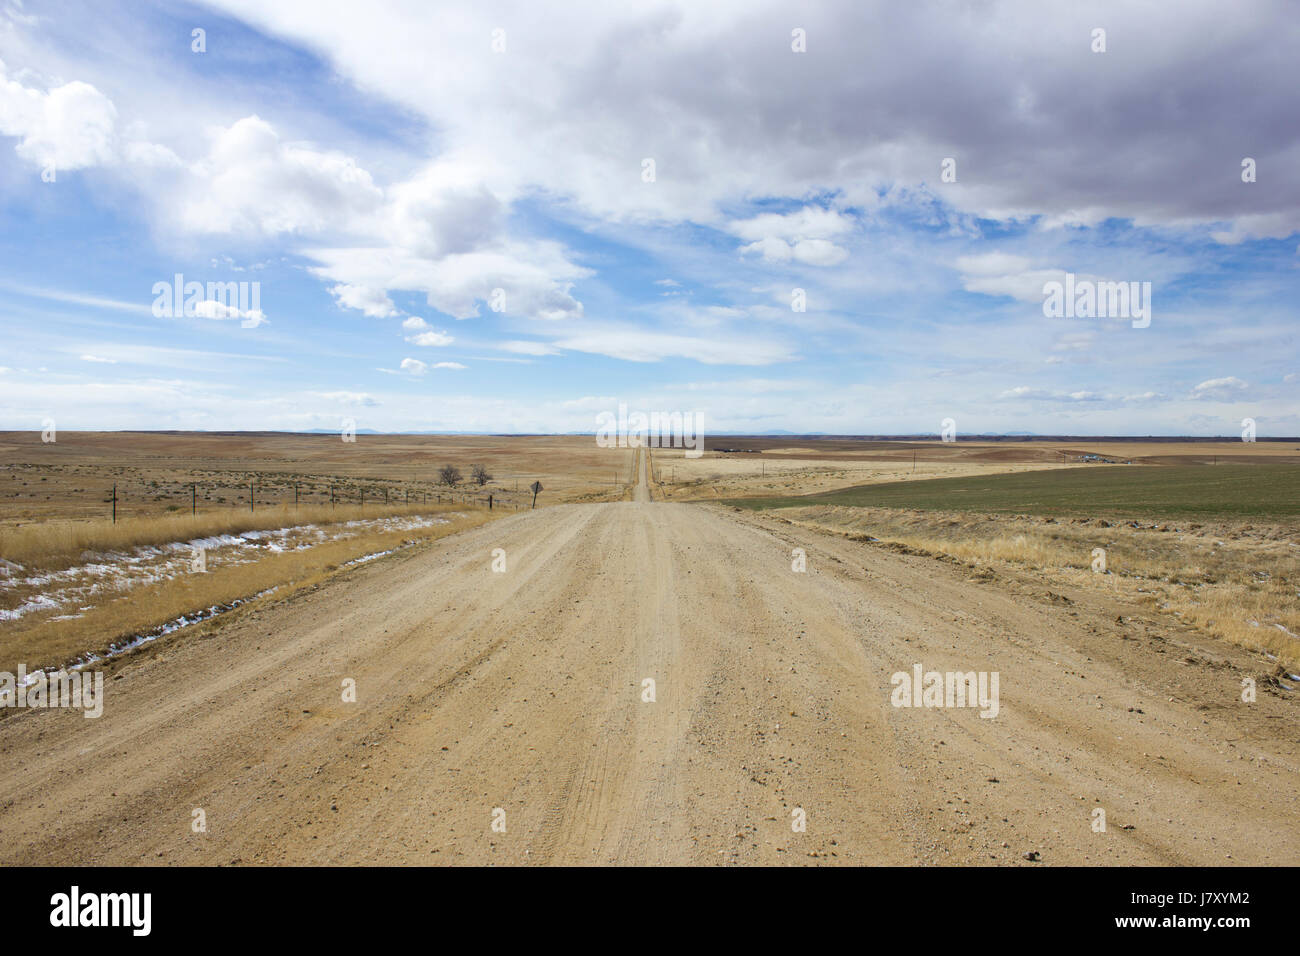 A dirt road through cultivated land in the prairies of Colorado - Stock Image